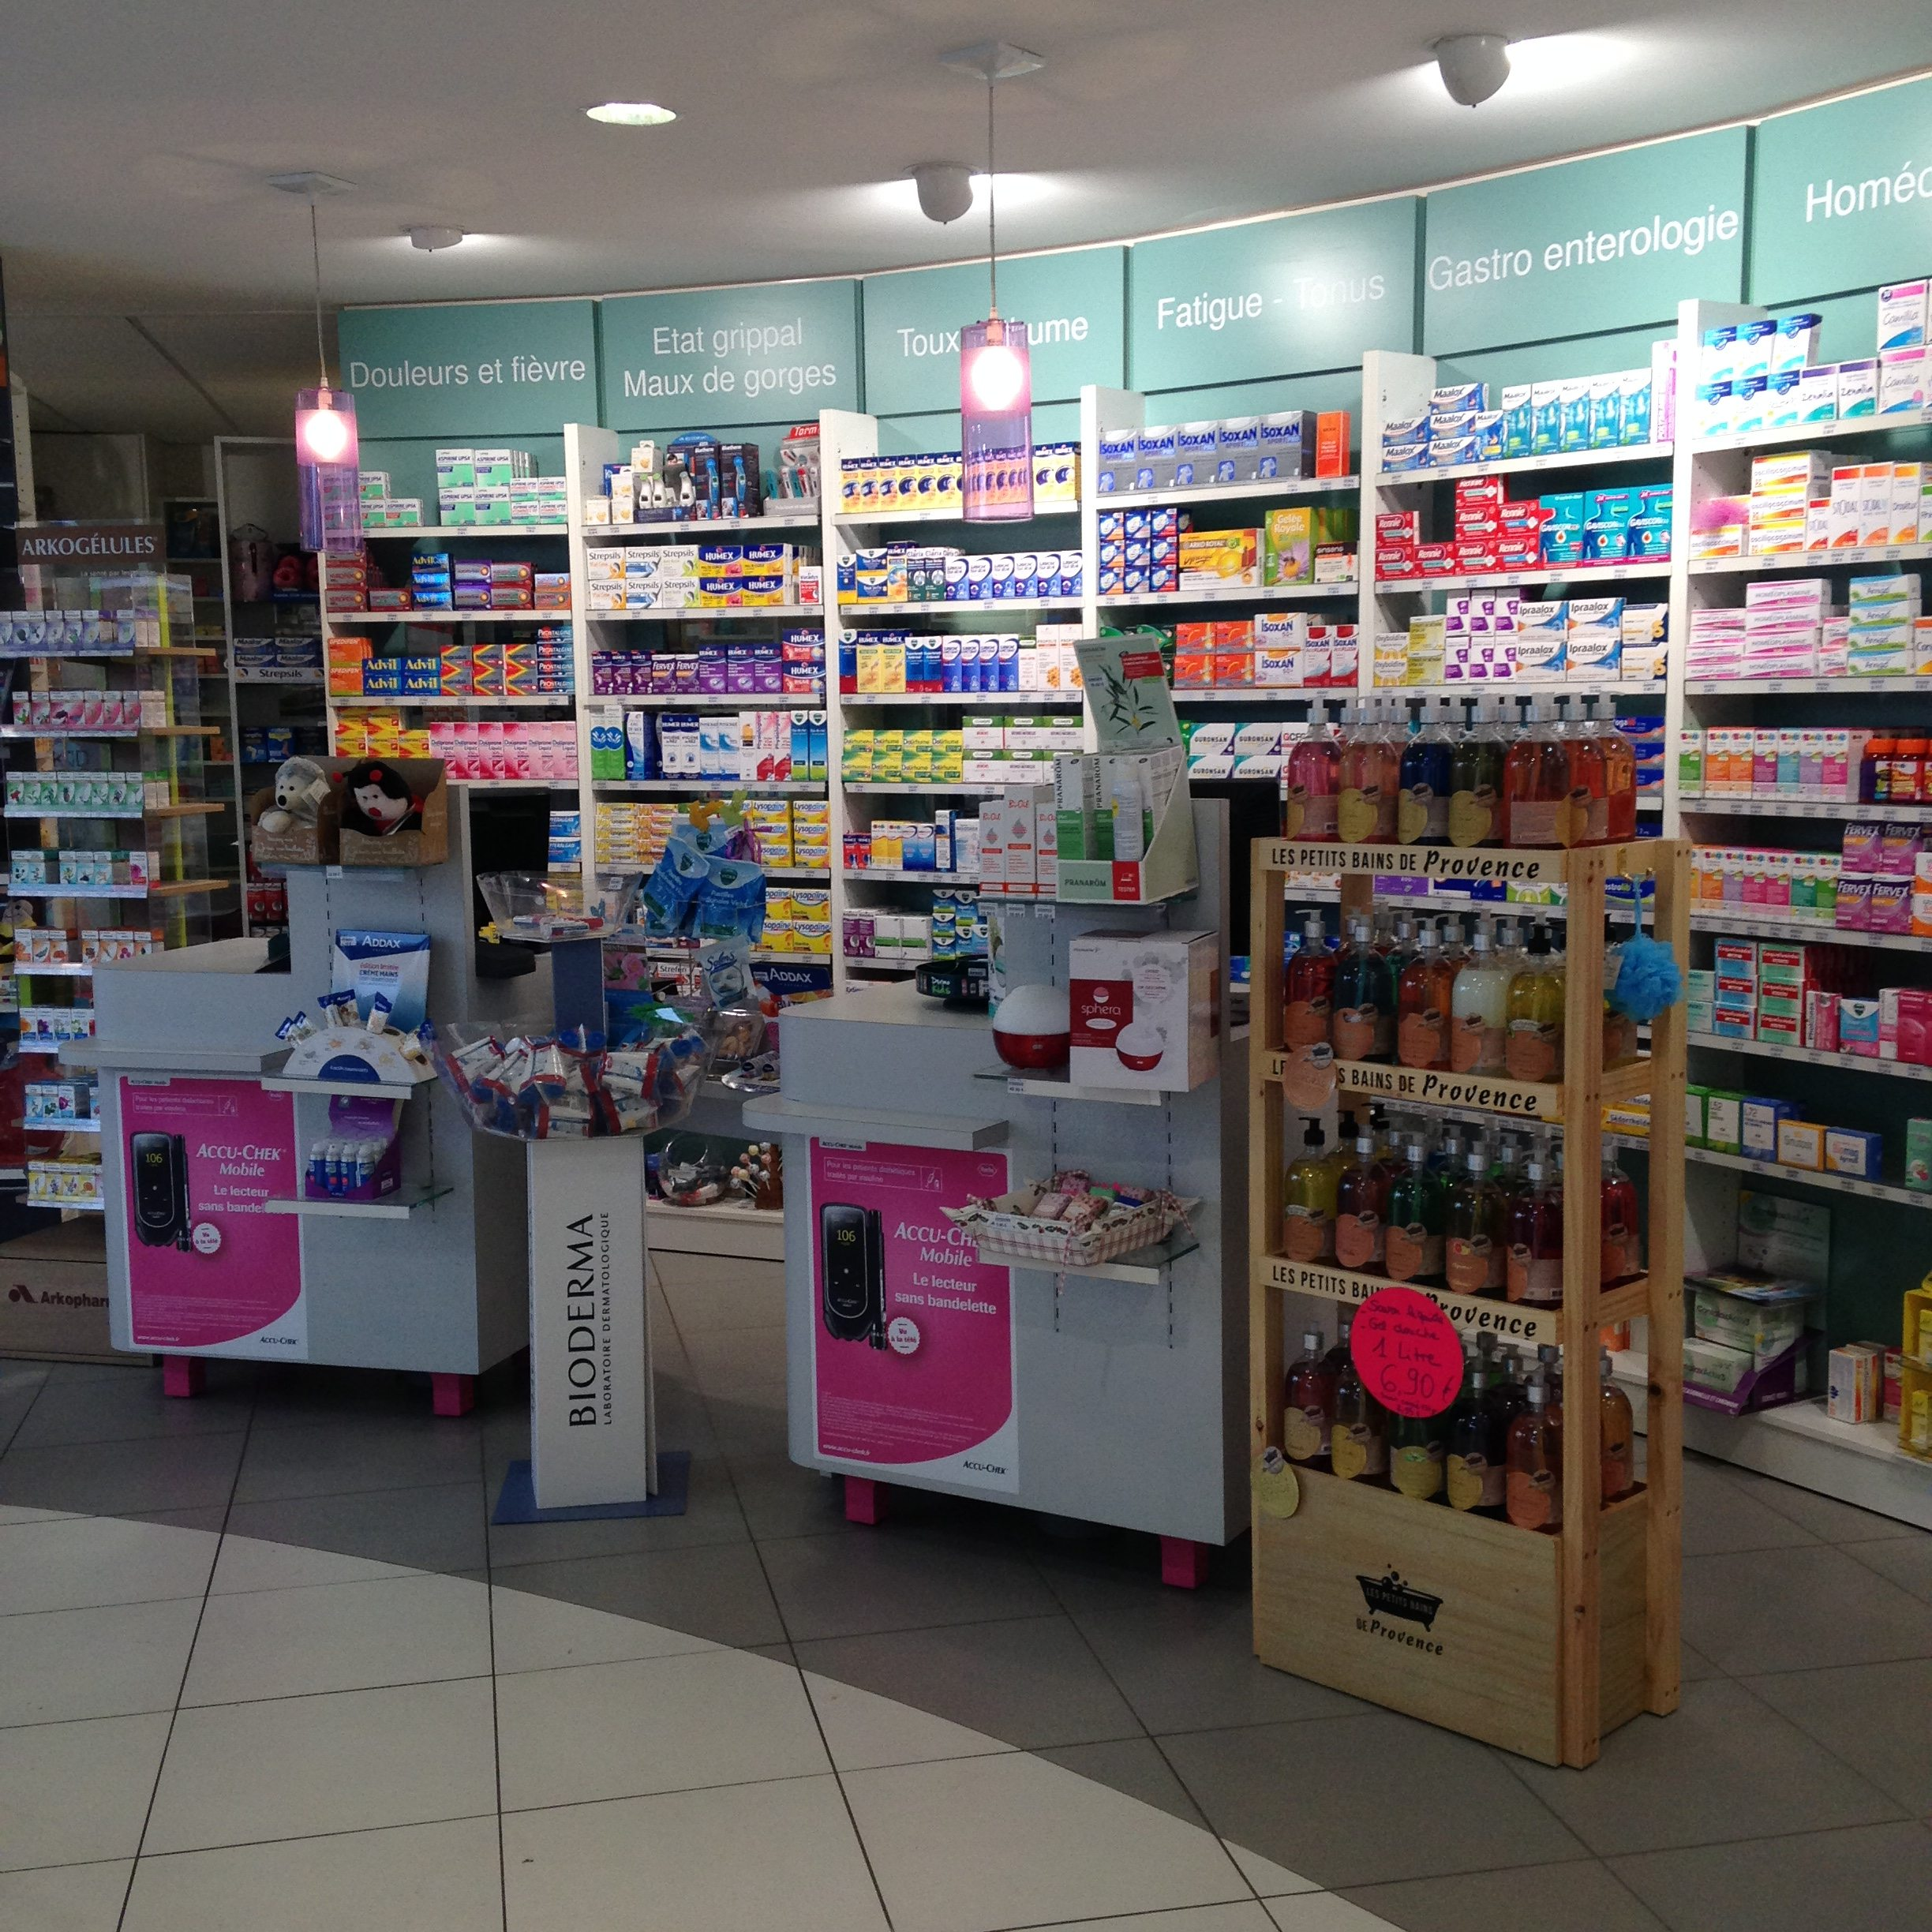 pharmacie d'officine moderne, Photo 1